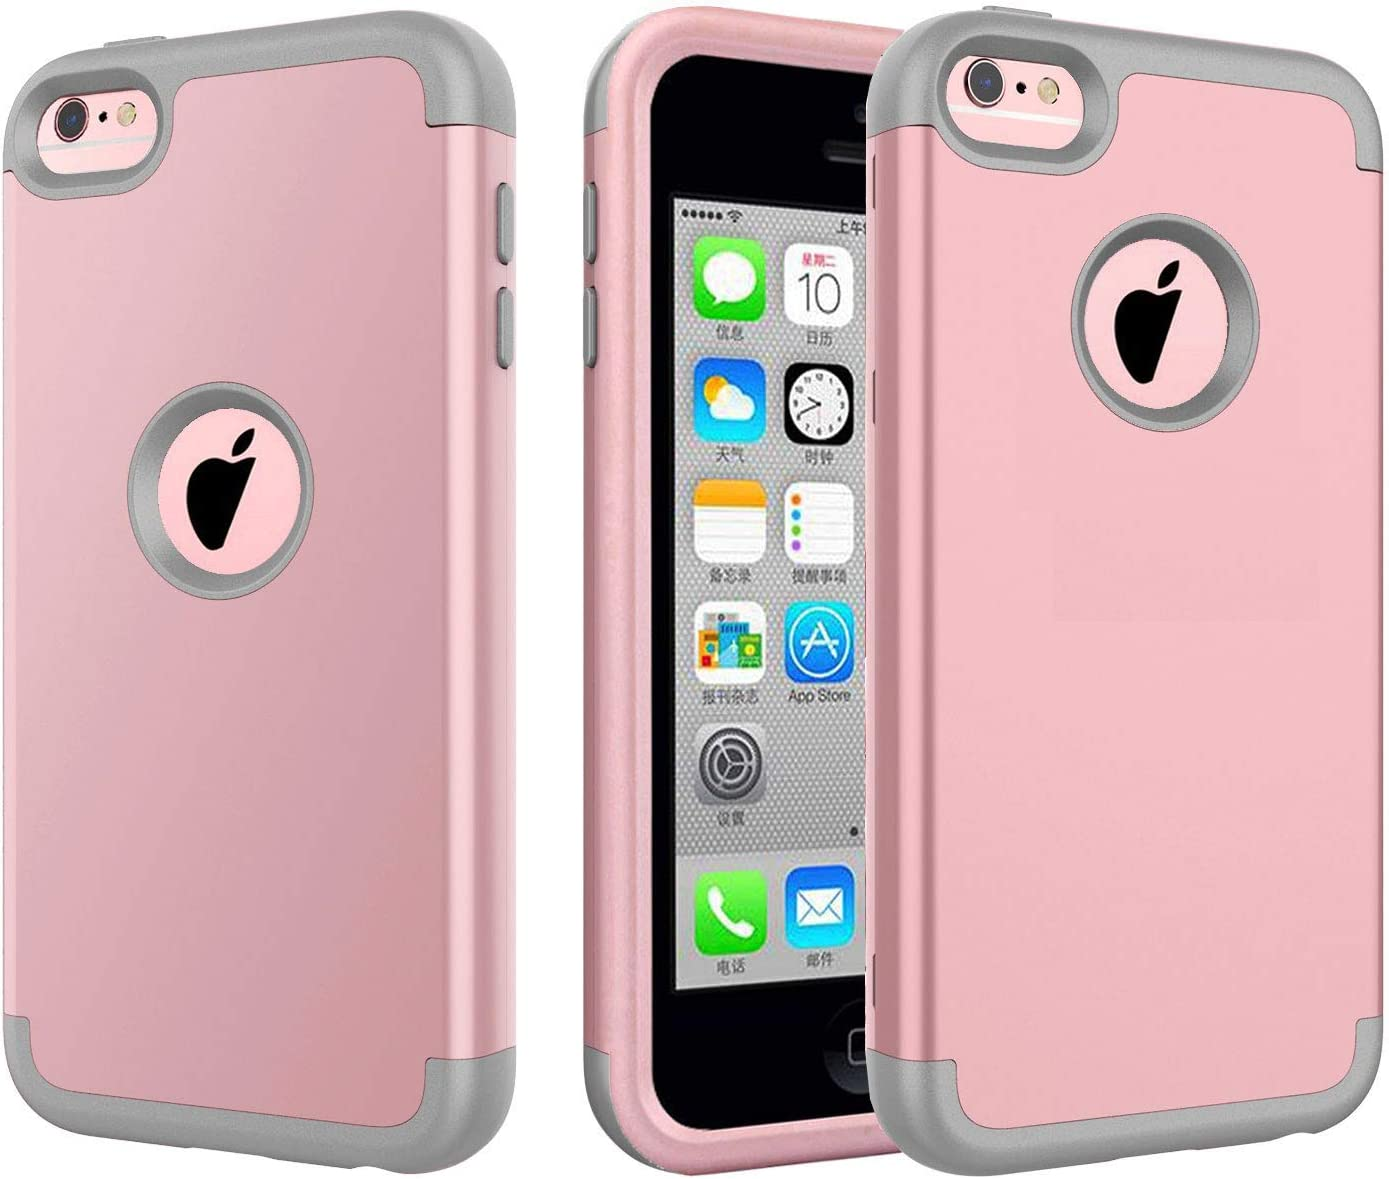 5c Case, iPhone 5c Case. J.west 3 in 1 Hard PC Shell and Soft Silicone Hybrid iPhone 5c Cases Shockproof Anti-Scratch Combo Cover for iPhone 5c - Rose Gold/Grey